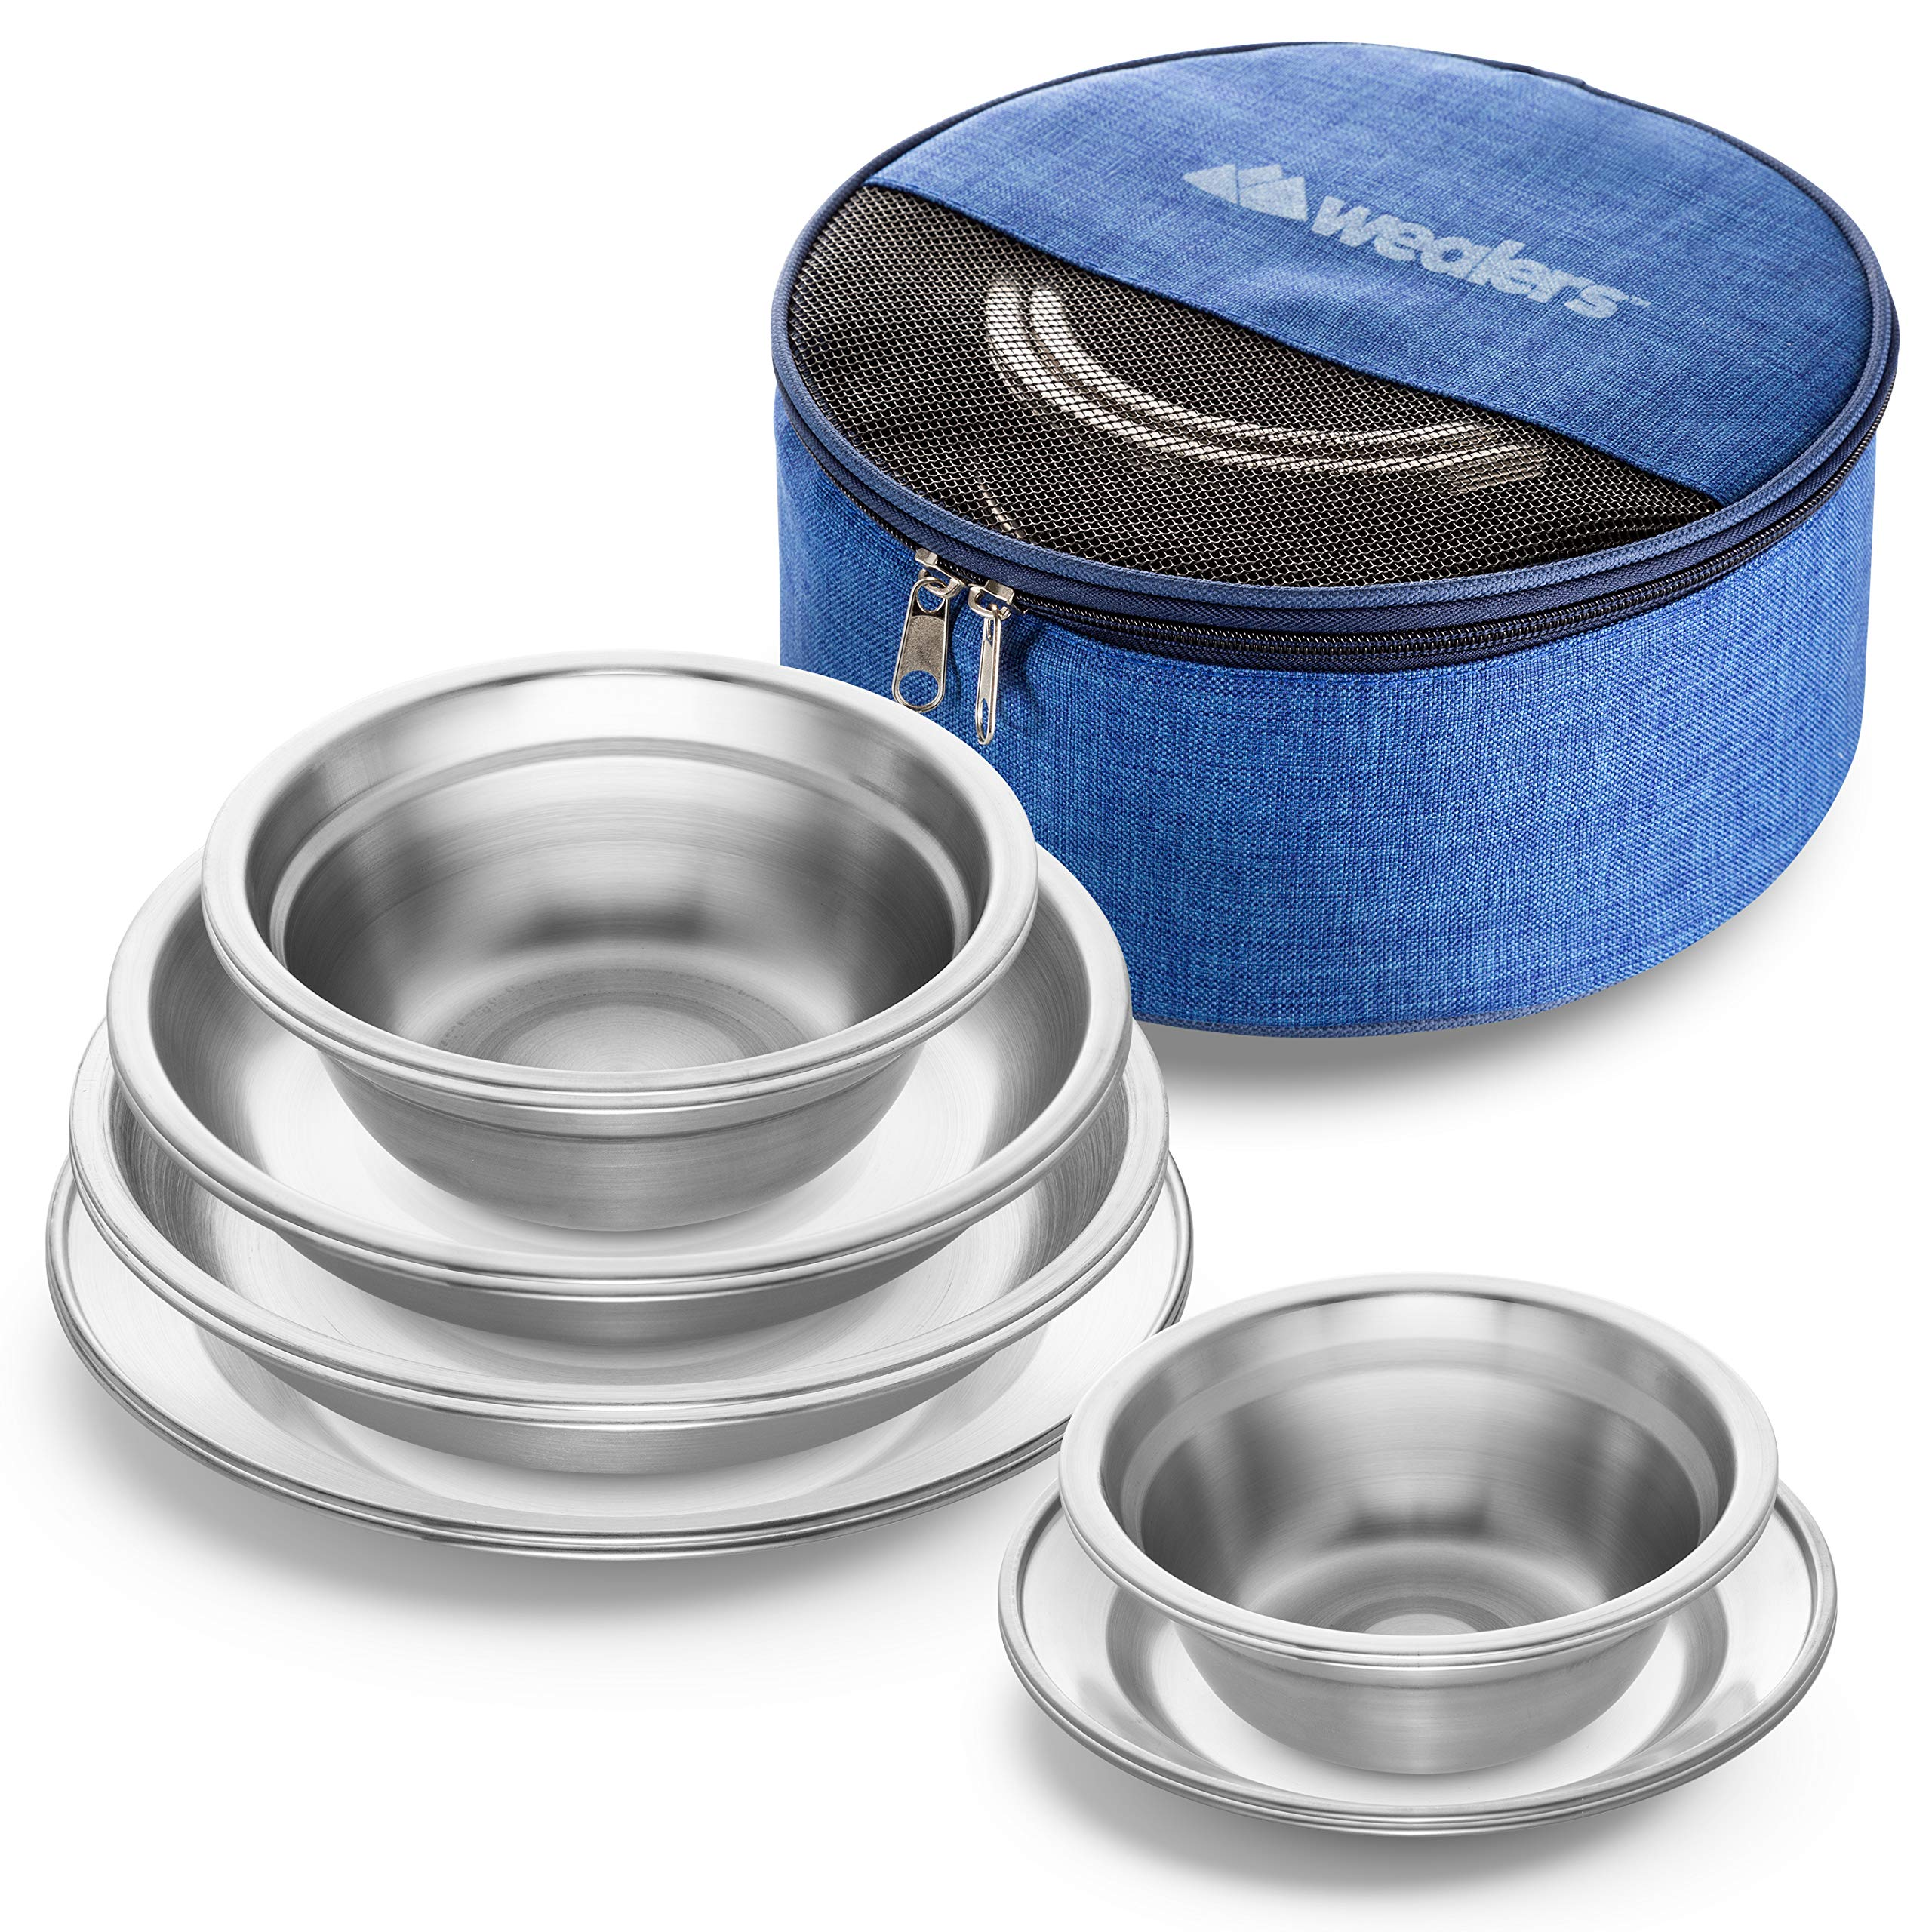 Wealers Stainless Steel Plates and Bowls Camping Set (12-Piece Kit) Small and Large Dinnerware for Kids, Adults, Family | Camping, Hiking, Beach, Outdoor Use | Incl. Travel Bag by Wealers